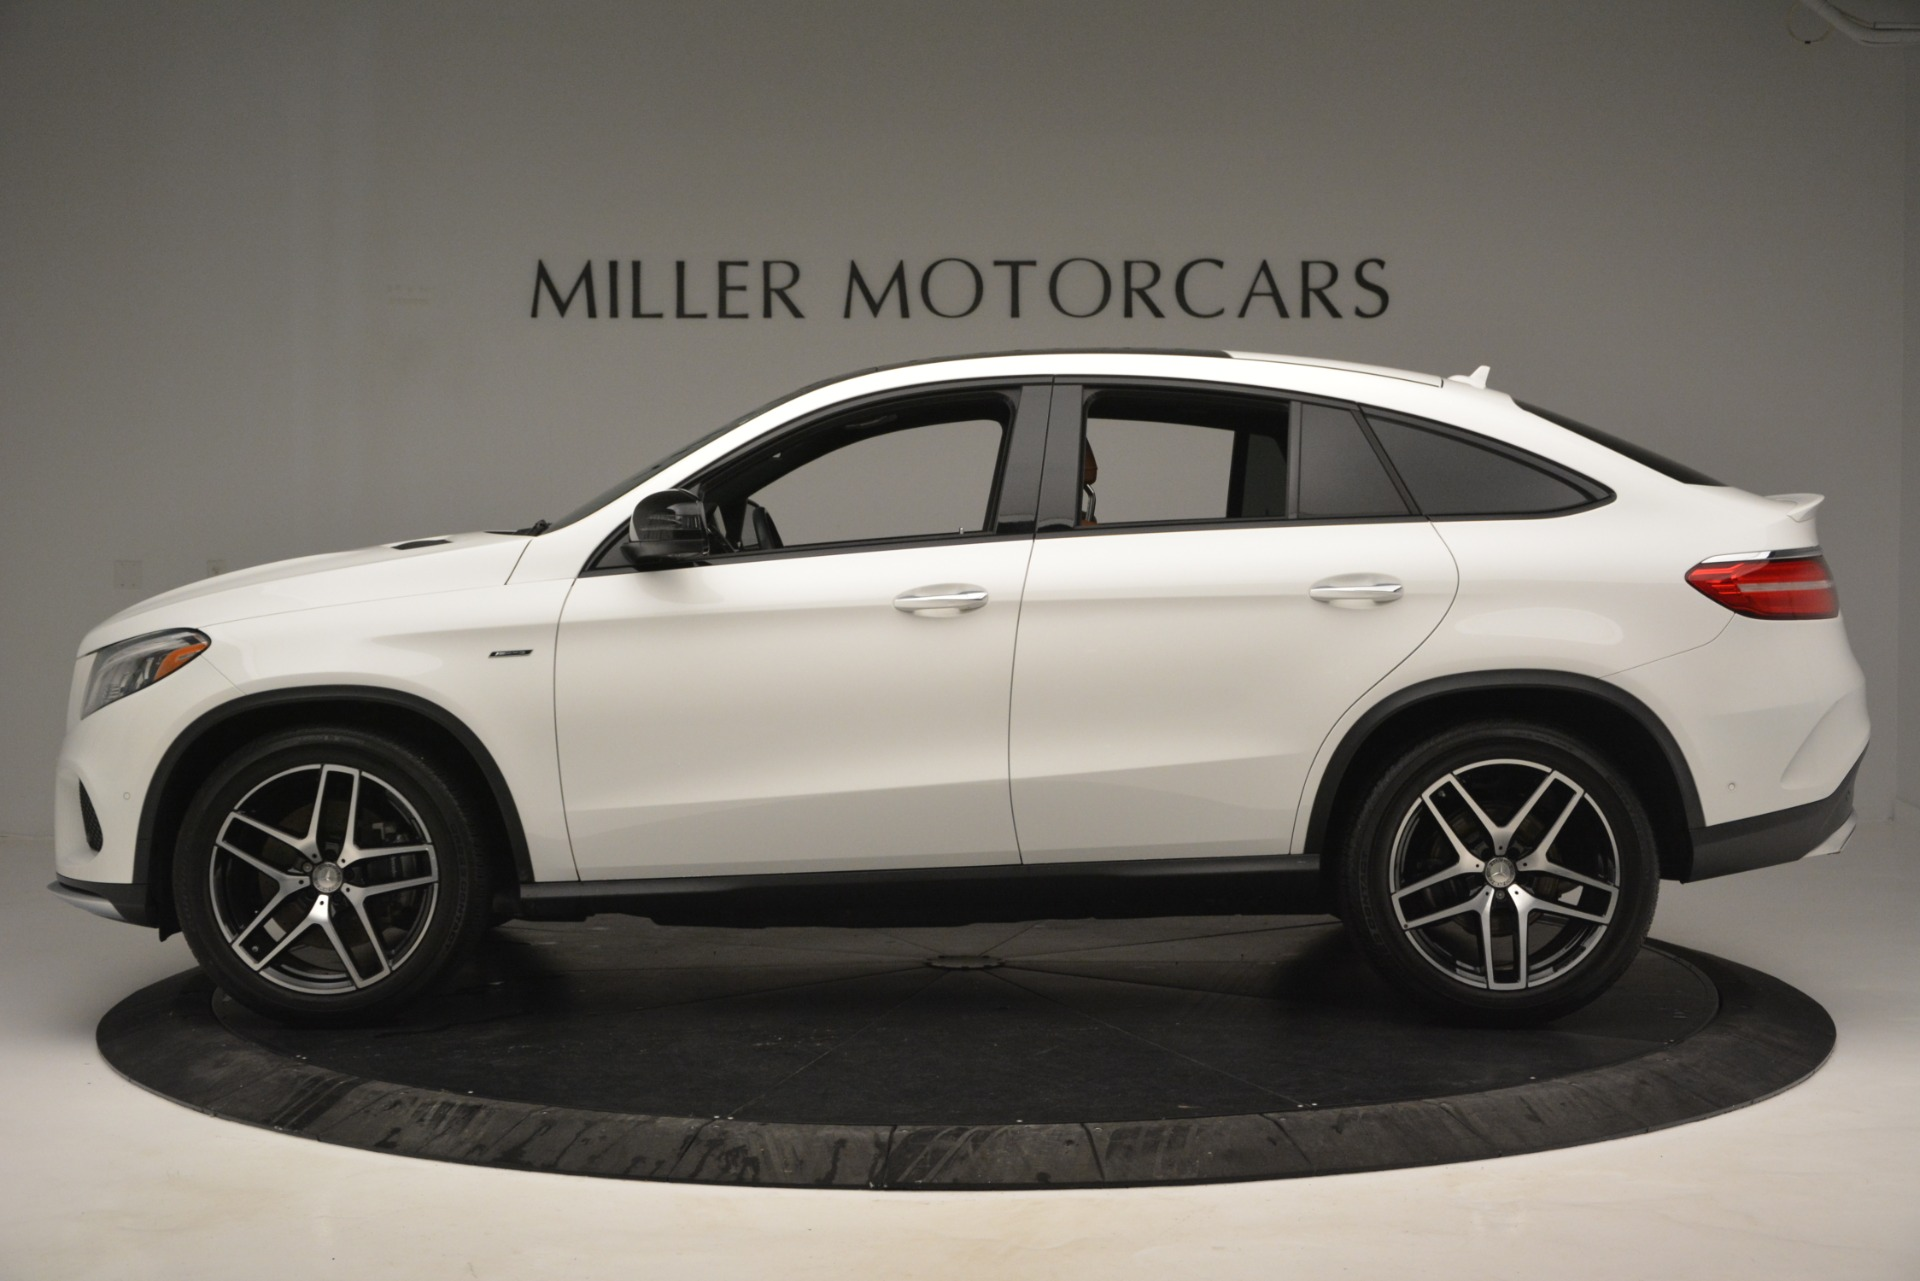 Used 2016 Mercedes-Benz GLE 450 AMG Coupe 4MATIC For Sale In Greenwich, CT 2787_p3